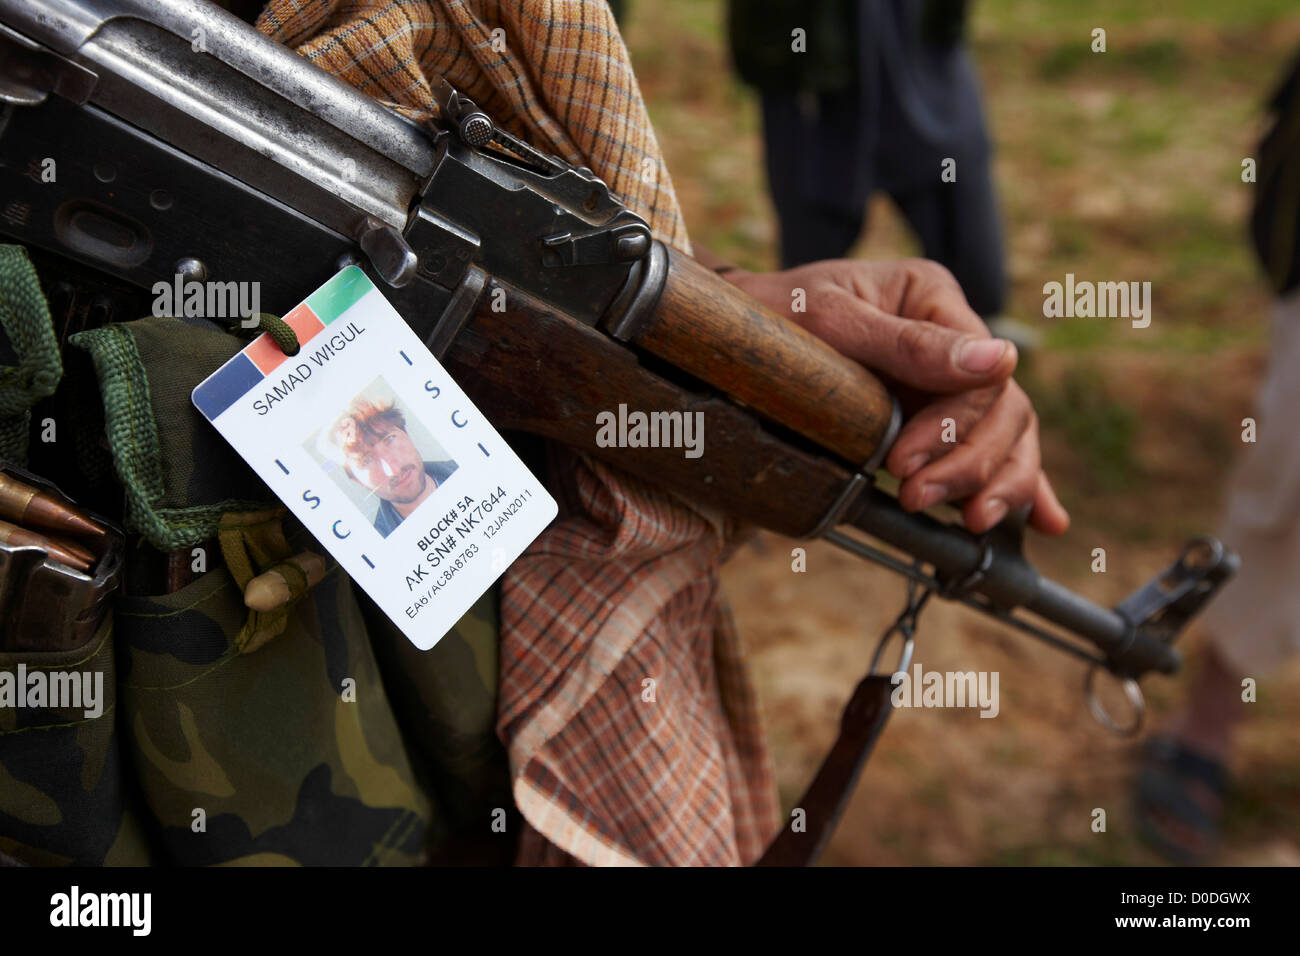 Detail of an Afghan Militia member's AK-47 assault rifle during a combat operation in Afghanistan's Helmand - Stock Image